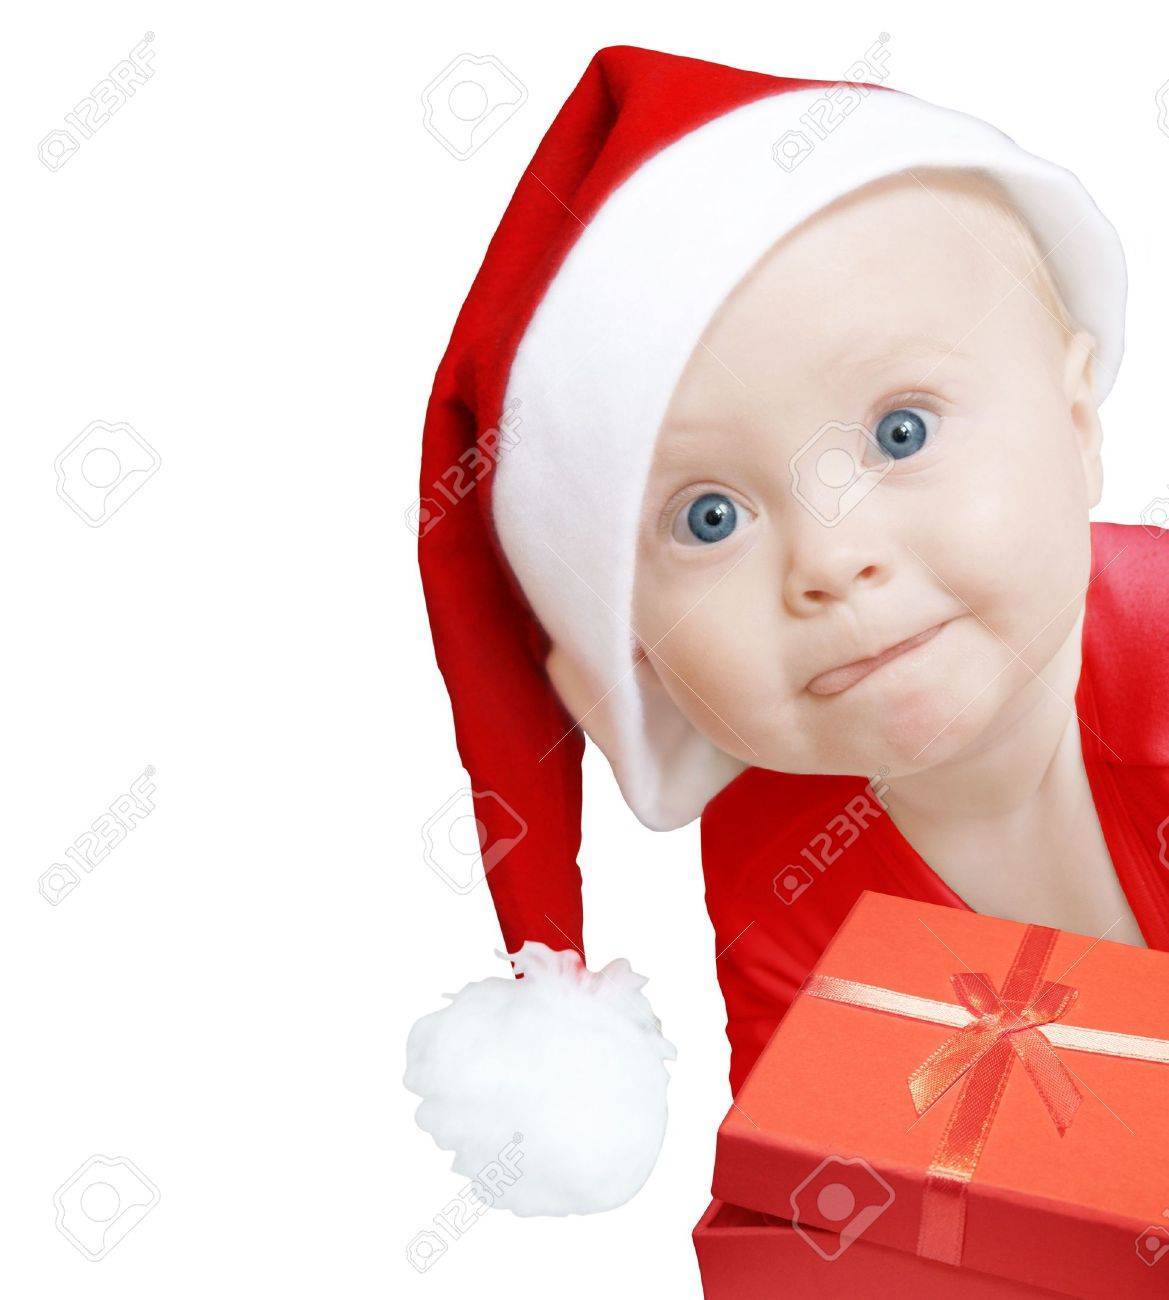 funny baby in Santa hat with present box on white background, space for text Stock Photo - 3884316